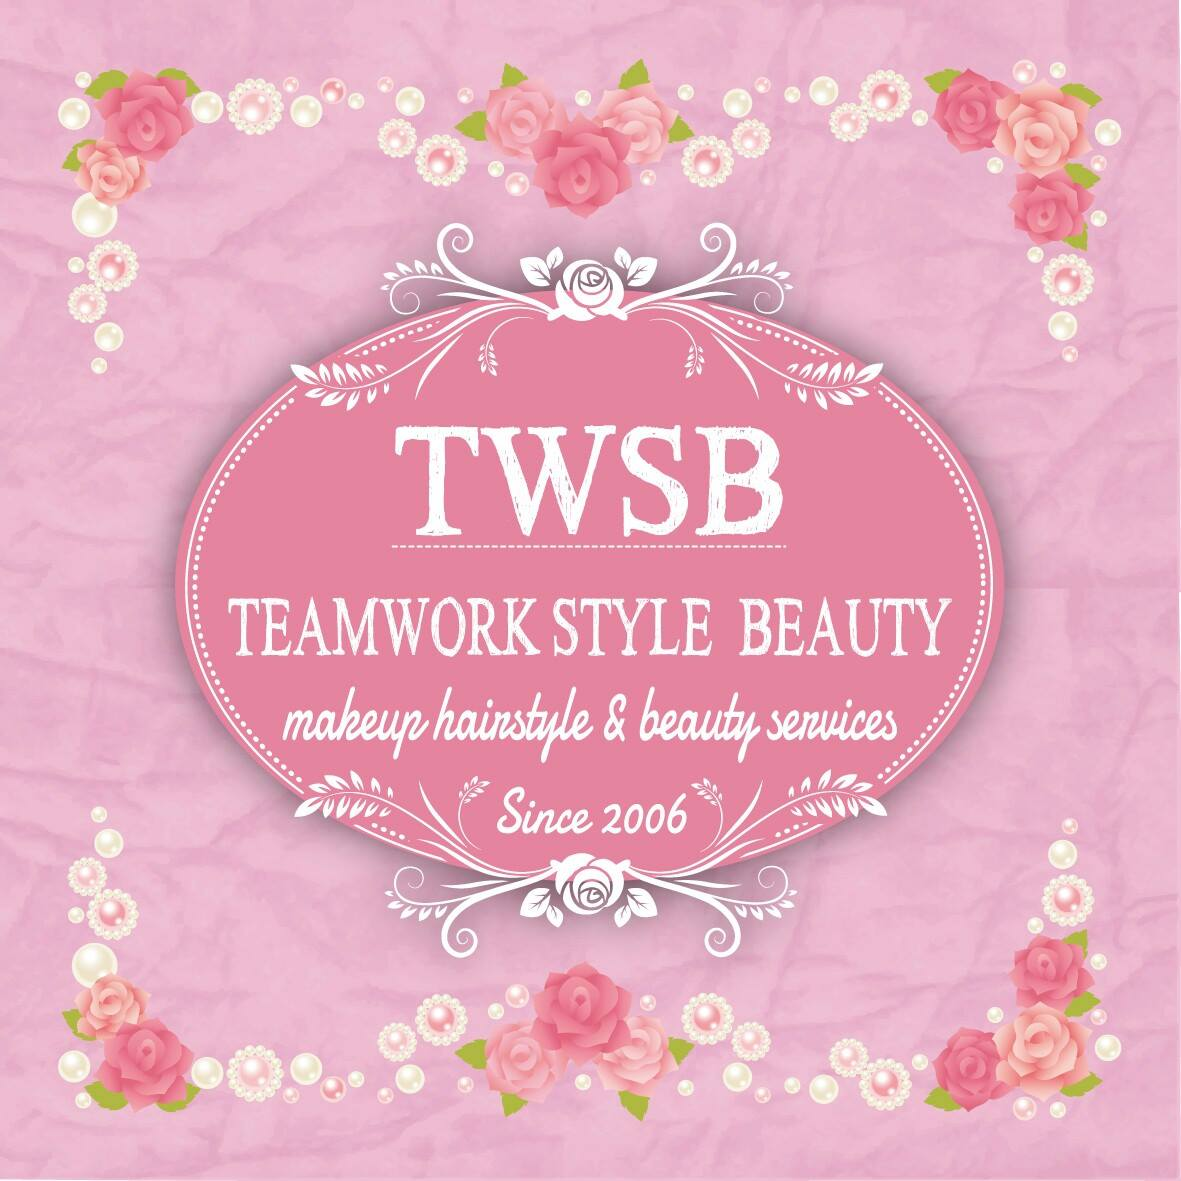 Teamwork Style Beauty (荔枝角店)